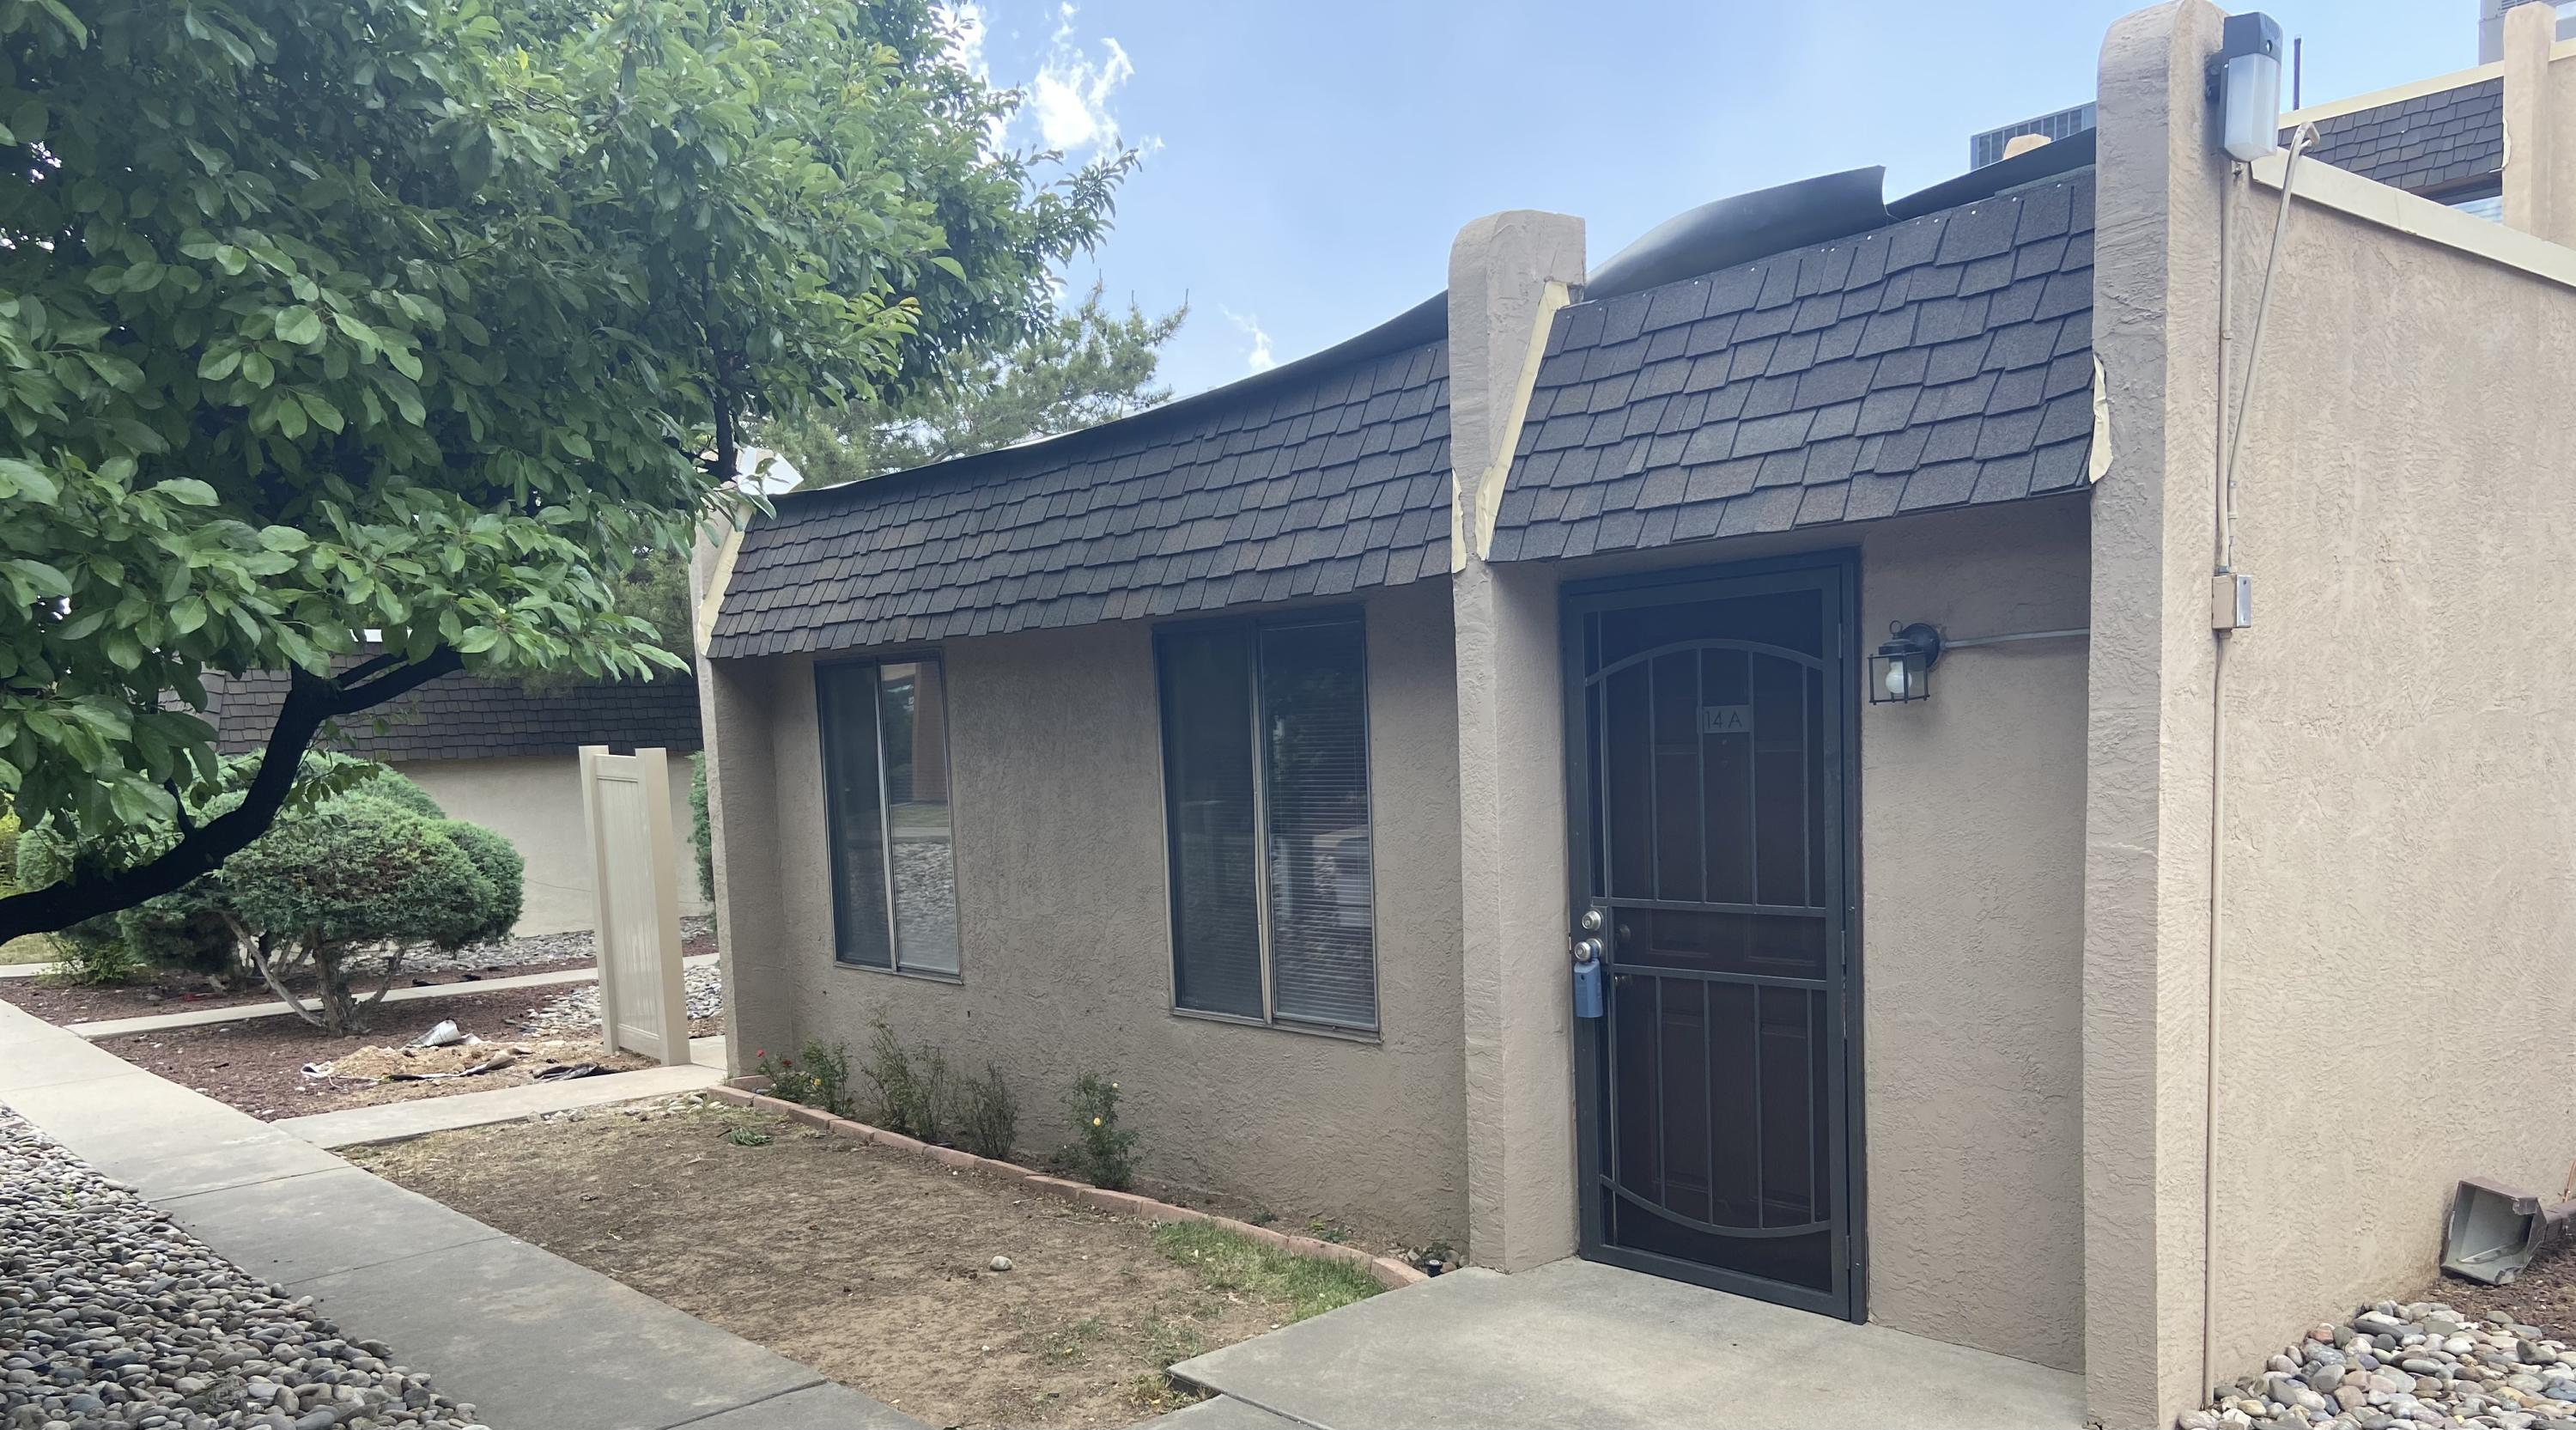 Cute one story Condo in the Del Sol Condominium Complex!  This approx 950SF home has 2BR's and 1BA, nice wood laminent flooring in living room and bedrooms, tile in kitchen and bath.  Private patio! NEW ROOFS BEING INSTALLED BEGINNING  MAY 6TH AND ALL WOOD FENCES SURROUNDING THE PATIO ARE BEING REPLACED SOON WITH AN ALL WEATHER FENCE. All appliances stay! HOA covers the roofs, stucco, fences and common areas, water, trash and sewer. Community is conveniently located to shopping, minutes to I-40 and I-25.